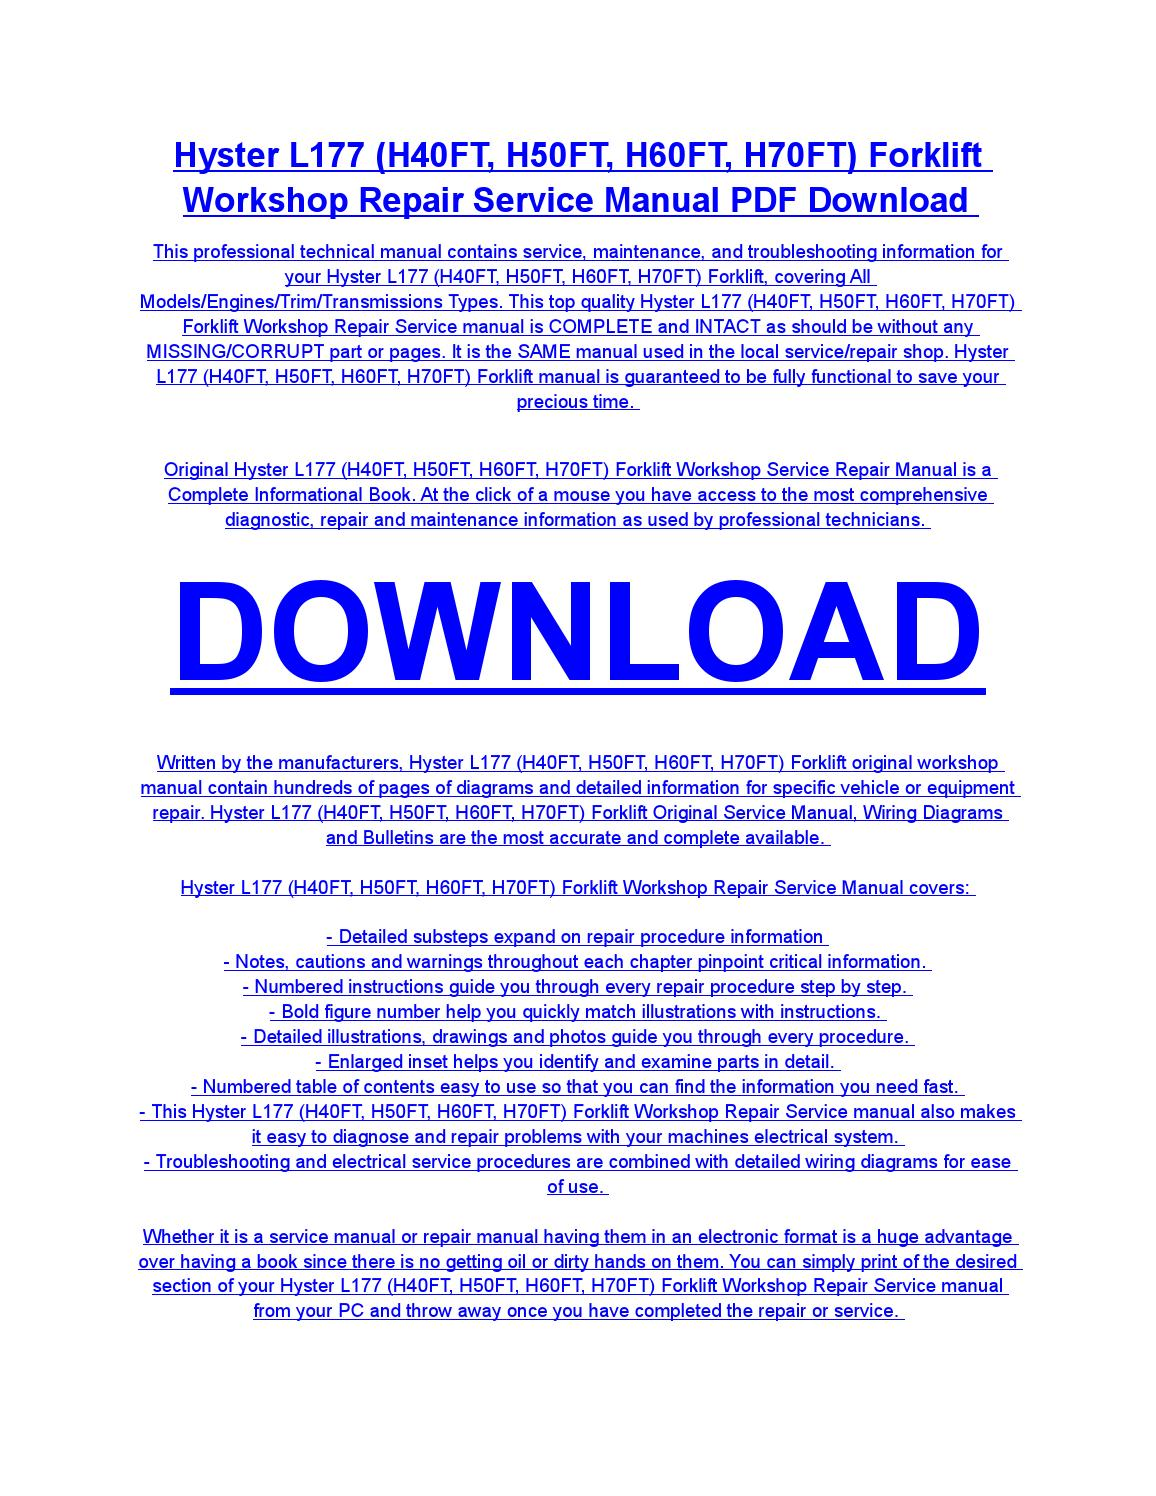 Hyster l177 (h40ft, h50ft, h60ft, h70ft) forklift service repair workshop  manual download by diaz rondon - issuu